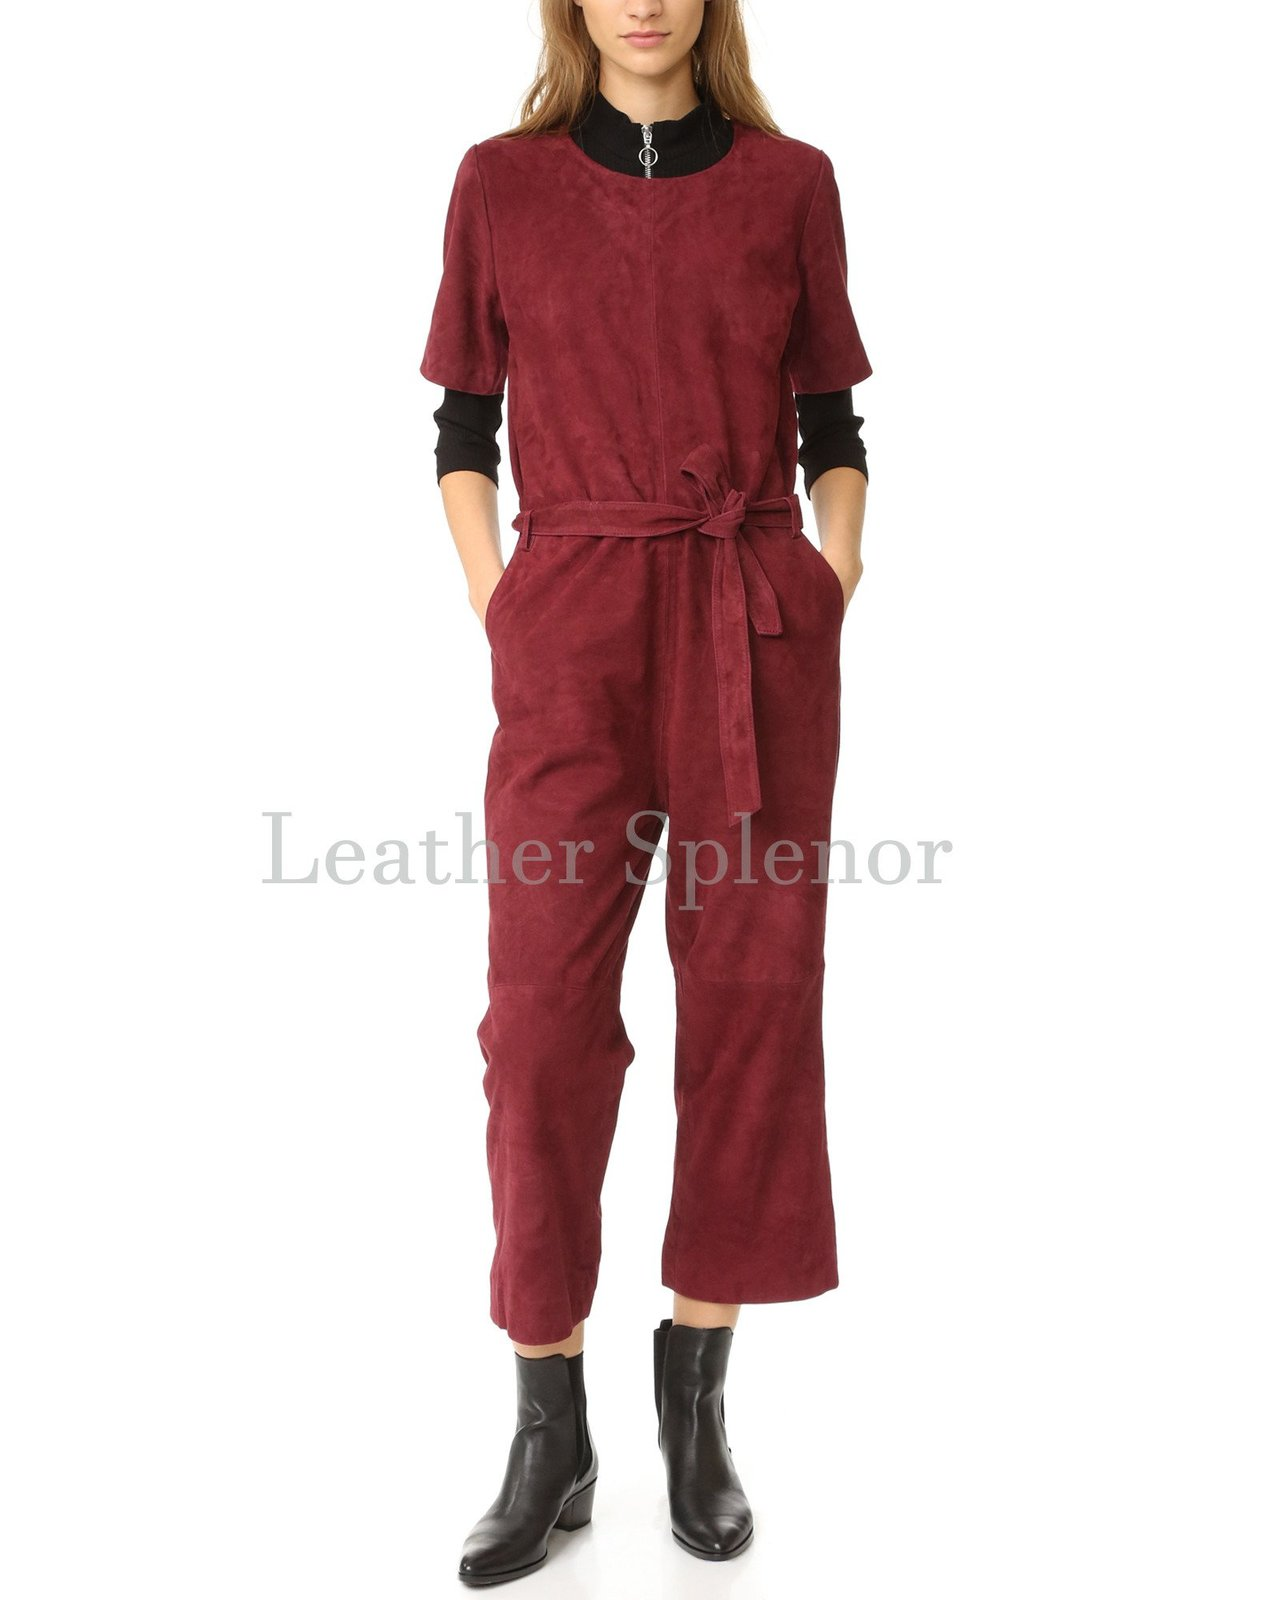 Corporate Style Suede Leather Jumpsuit